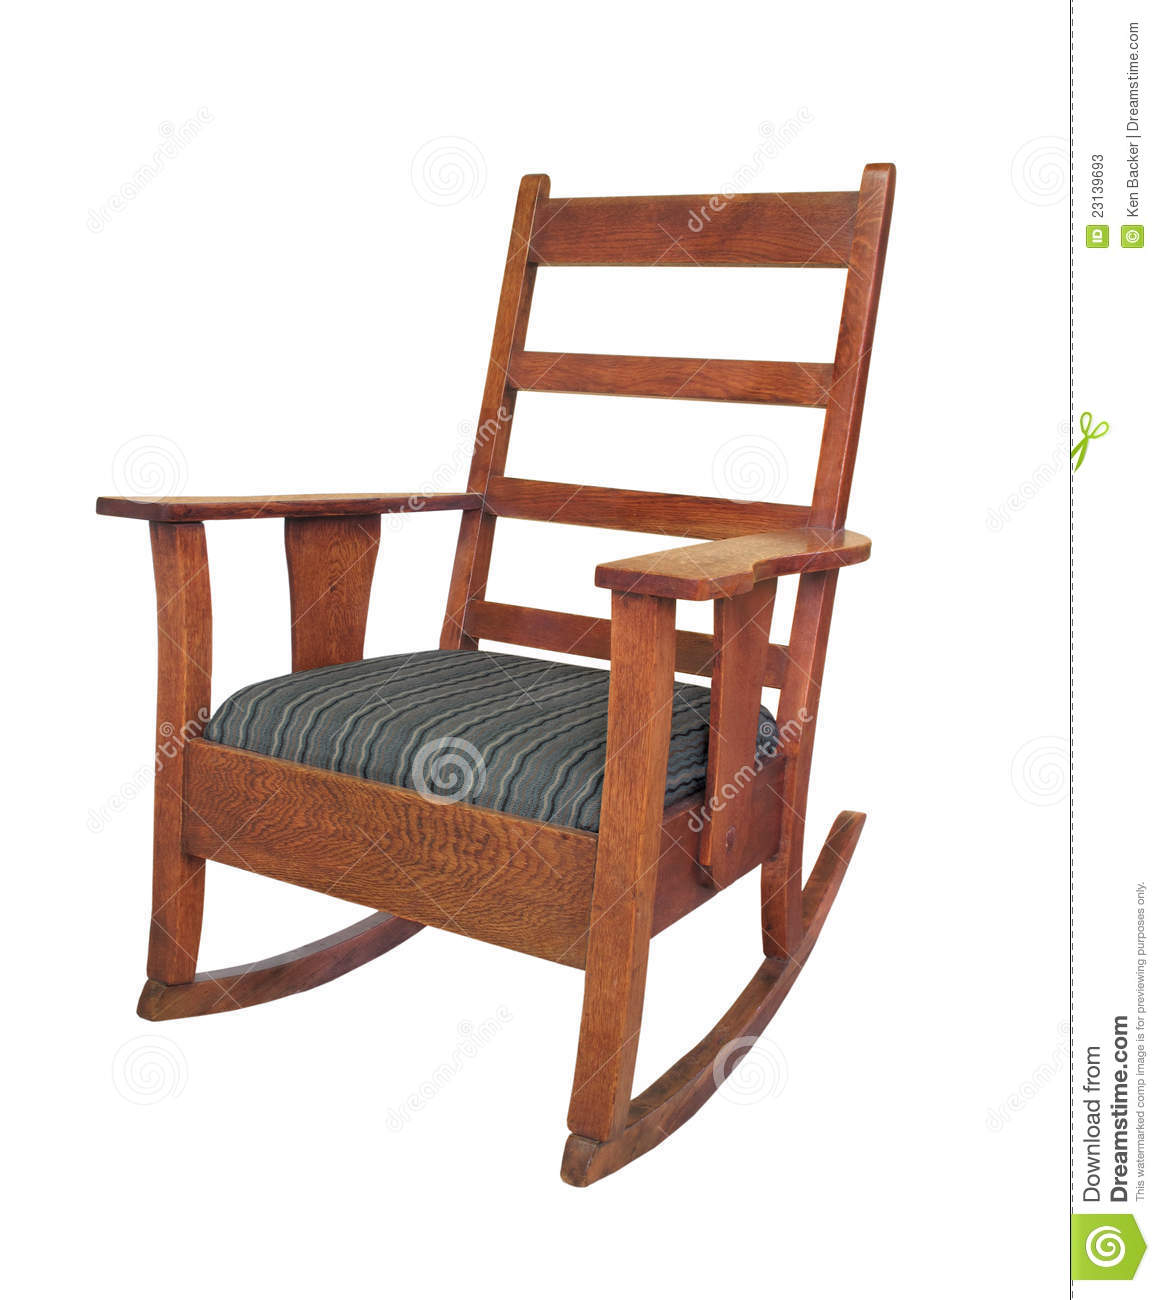 Antique Wooden Rocking Chair Isolated